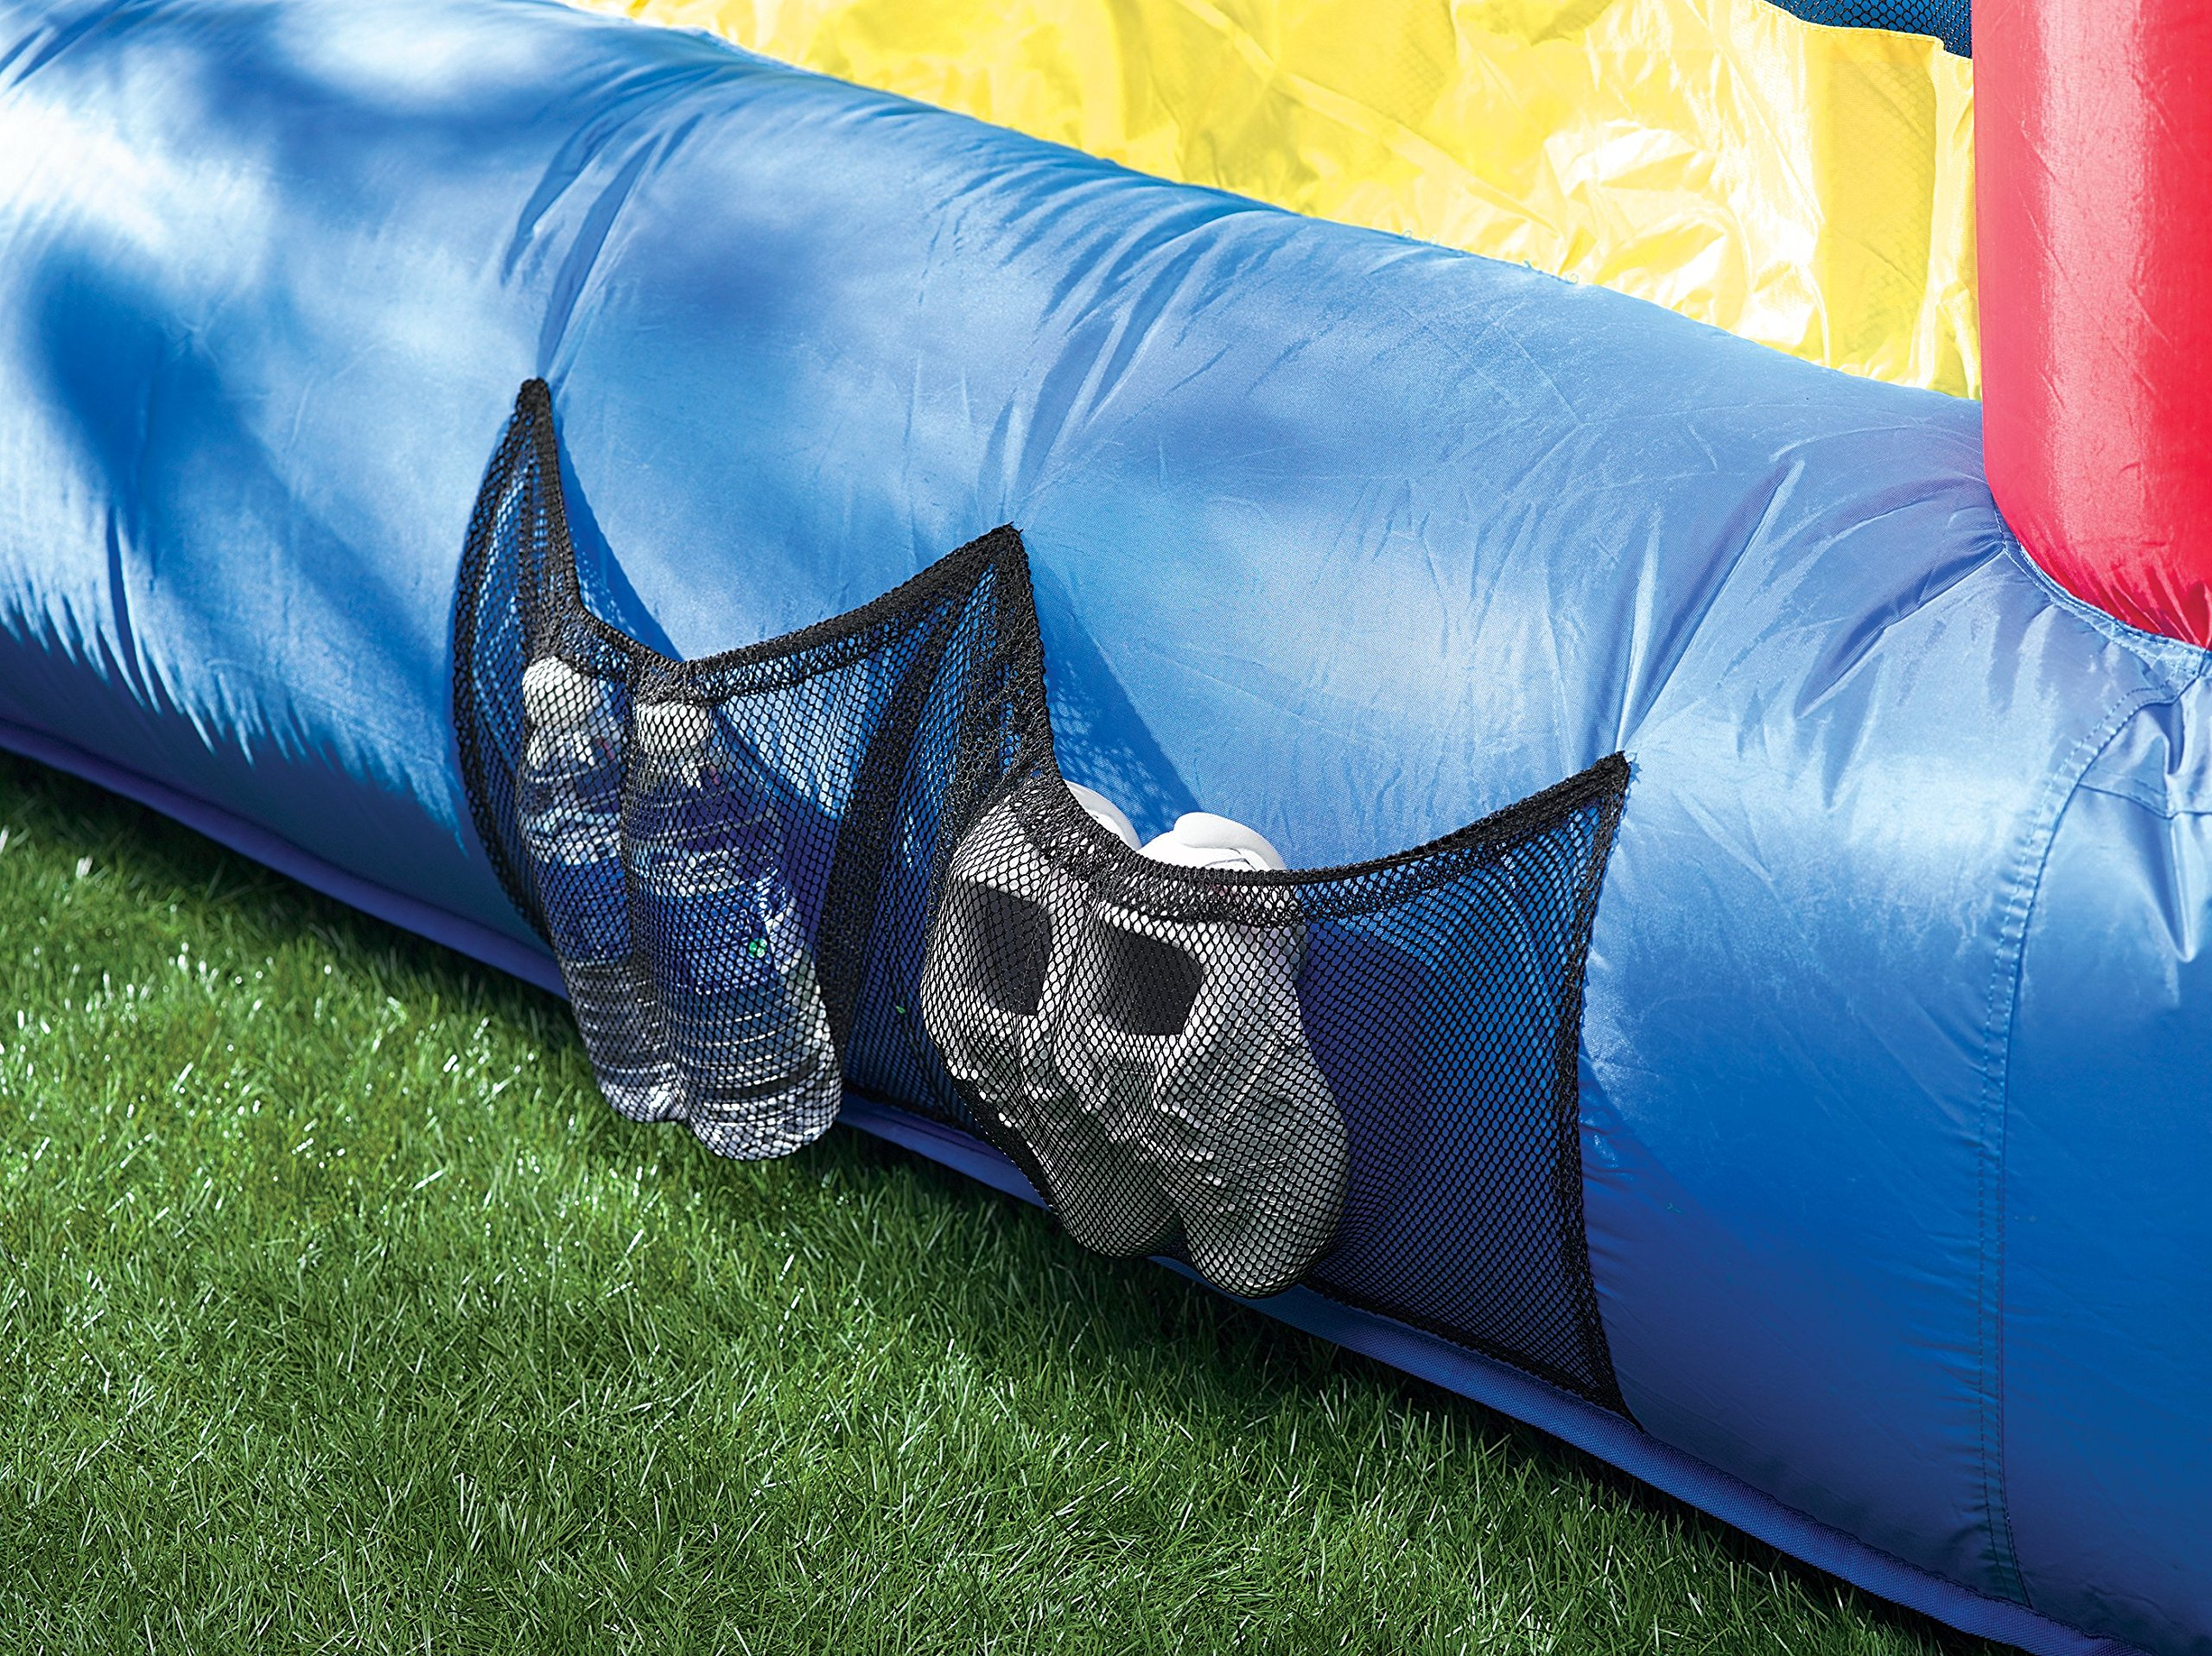 Little Tikes Inflatable Jump 'n Slide Bounce House w/heavy duty blower by Little Tikes (Image #10)